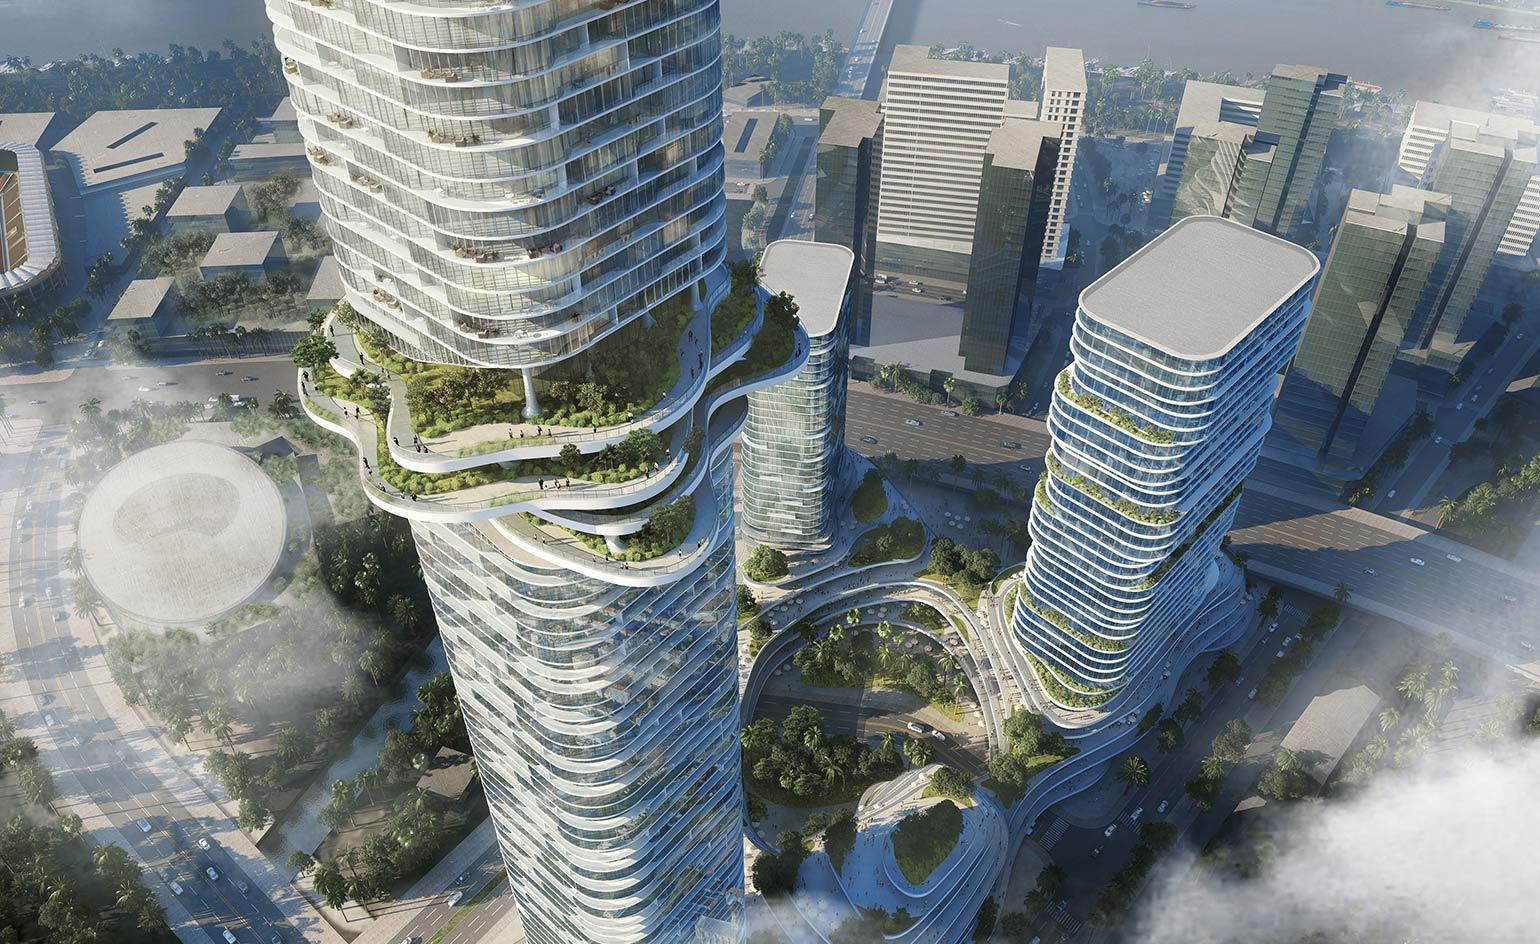 empire-city-by-ole-scheeren-c-buro-os_04_sky-forest-and-cultivated-terraces-2